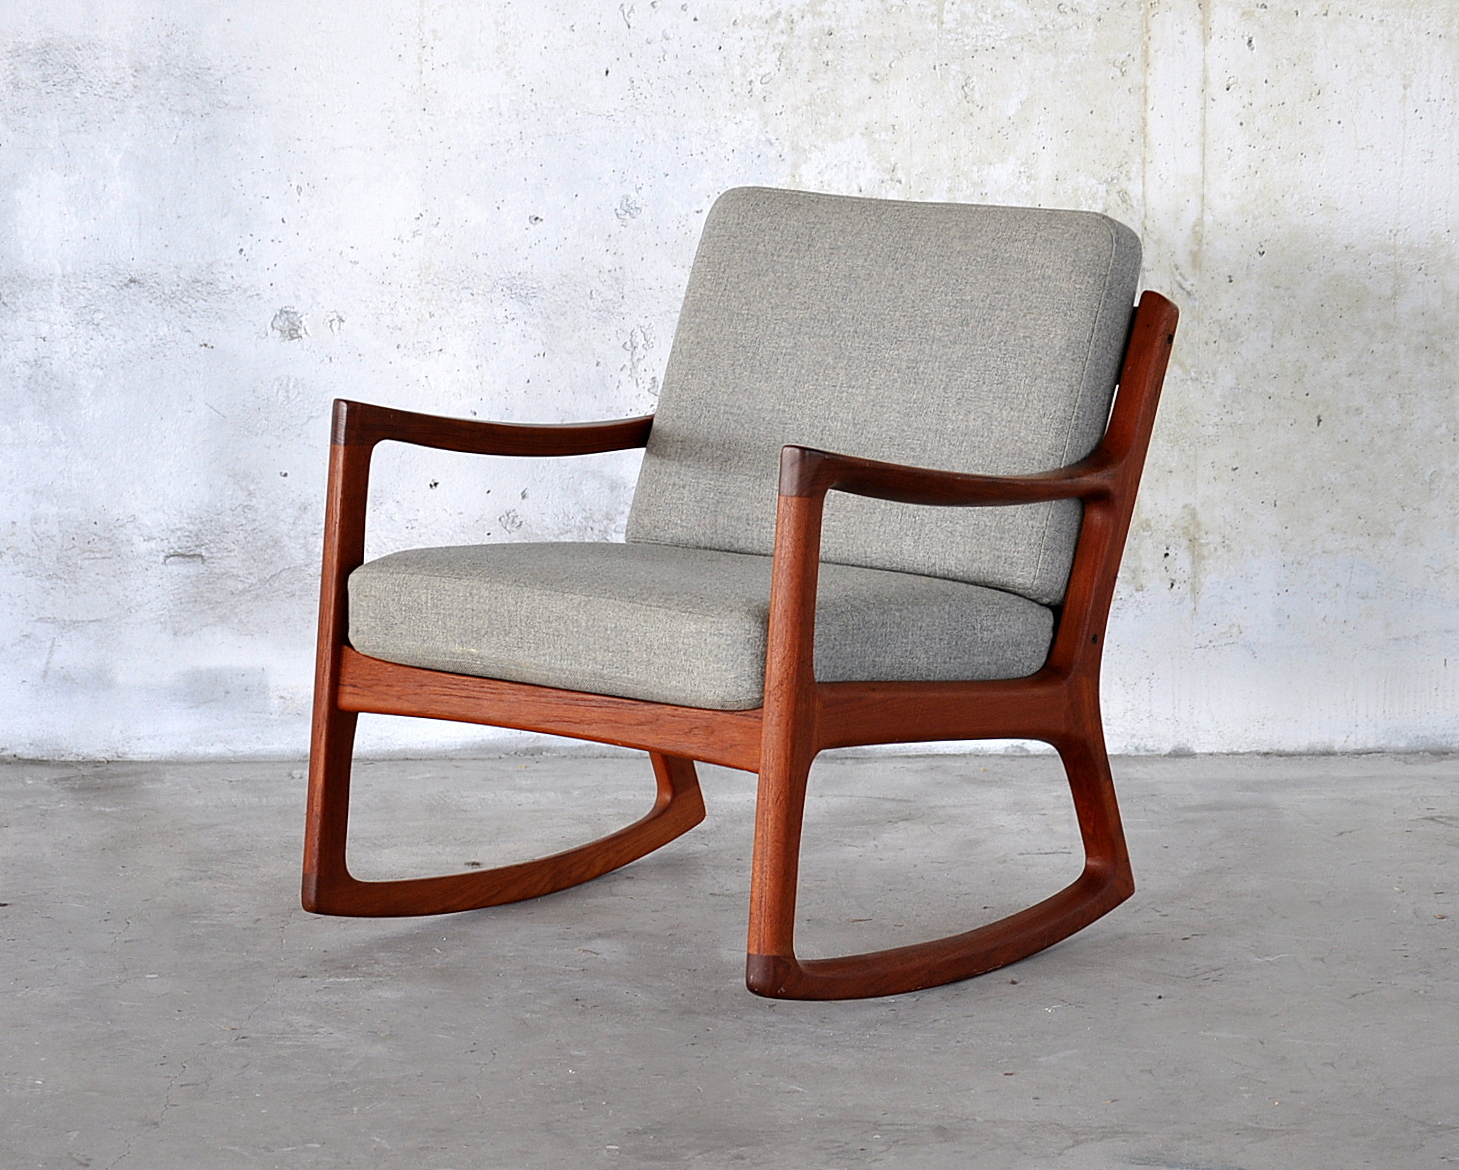 Modern Rocking Chair ~ Select modern ole wanscher teak rocking chair